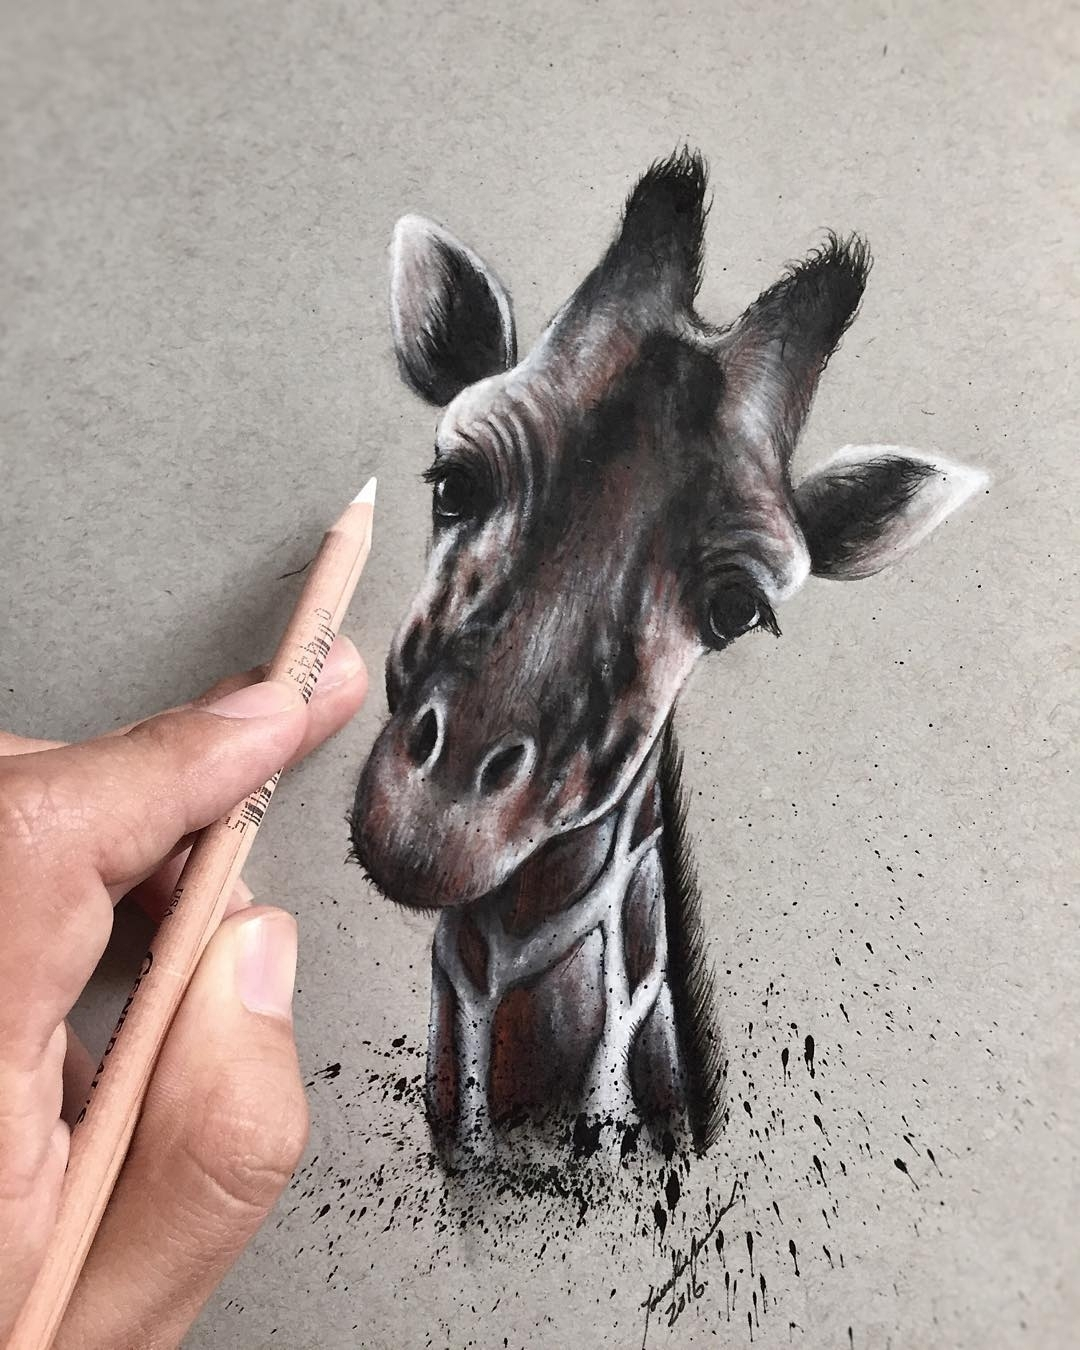 10-Giraffe-Jonathan-Martinez-Art-of-the-Endangered-Paintings-and-Drawings-www-designstack-co